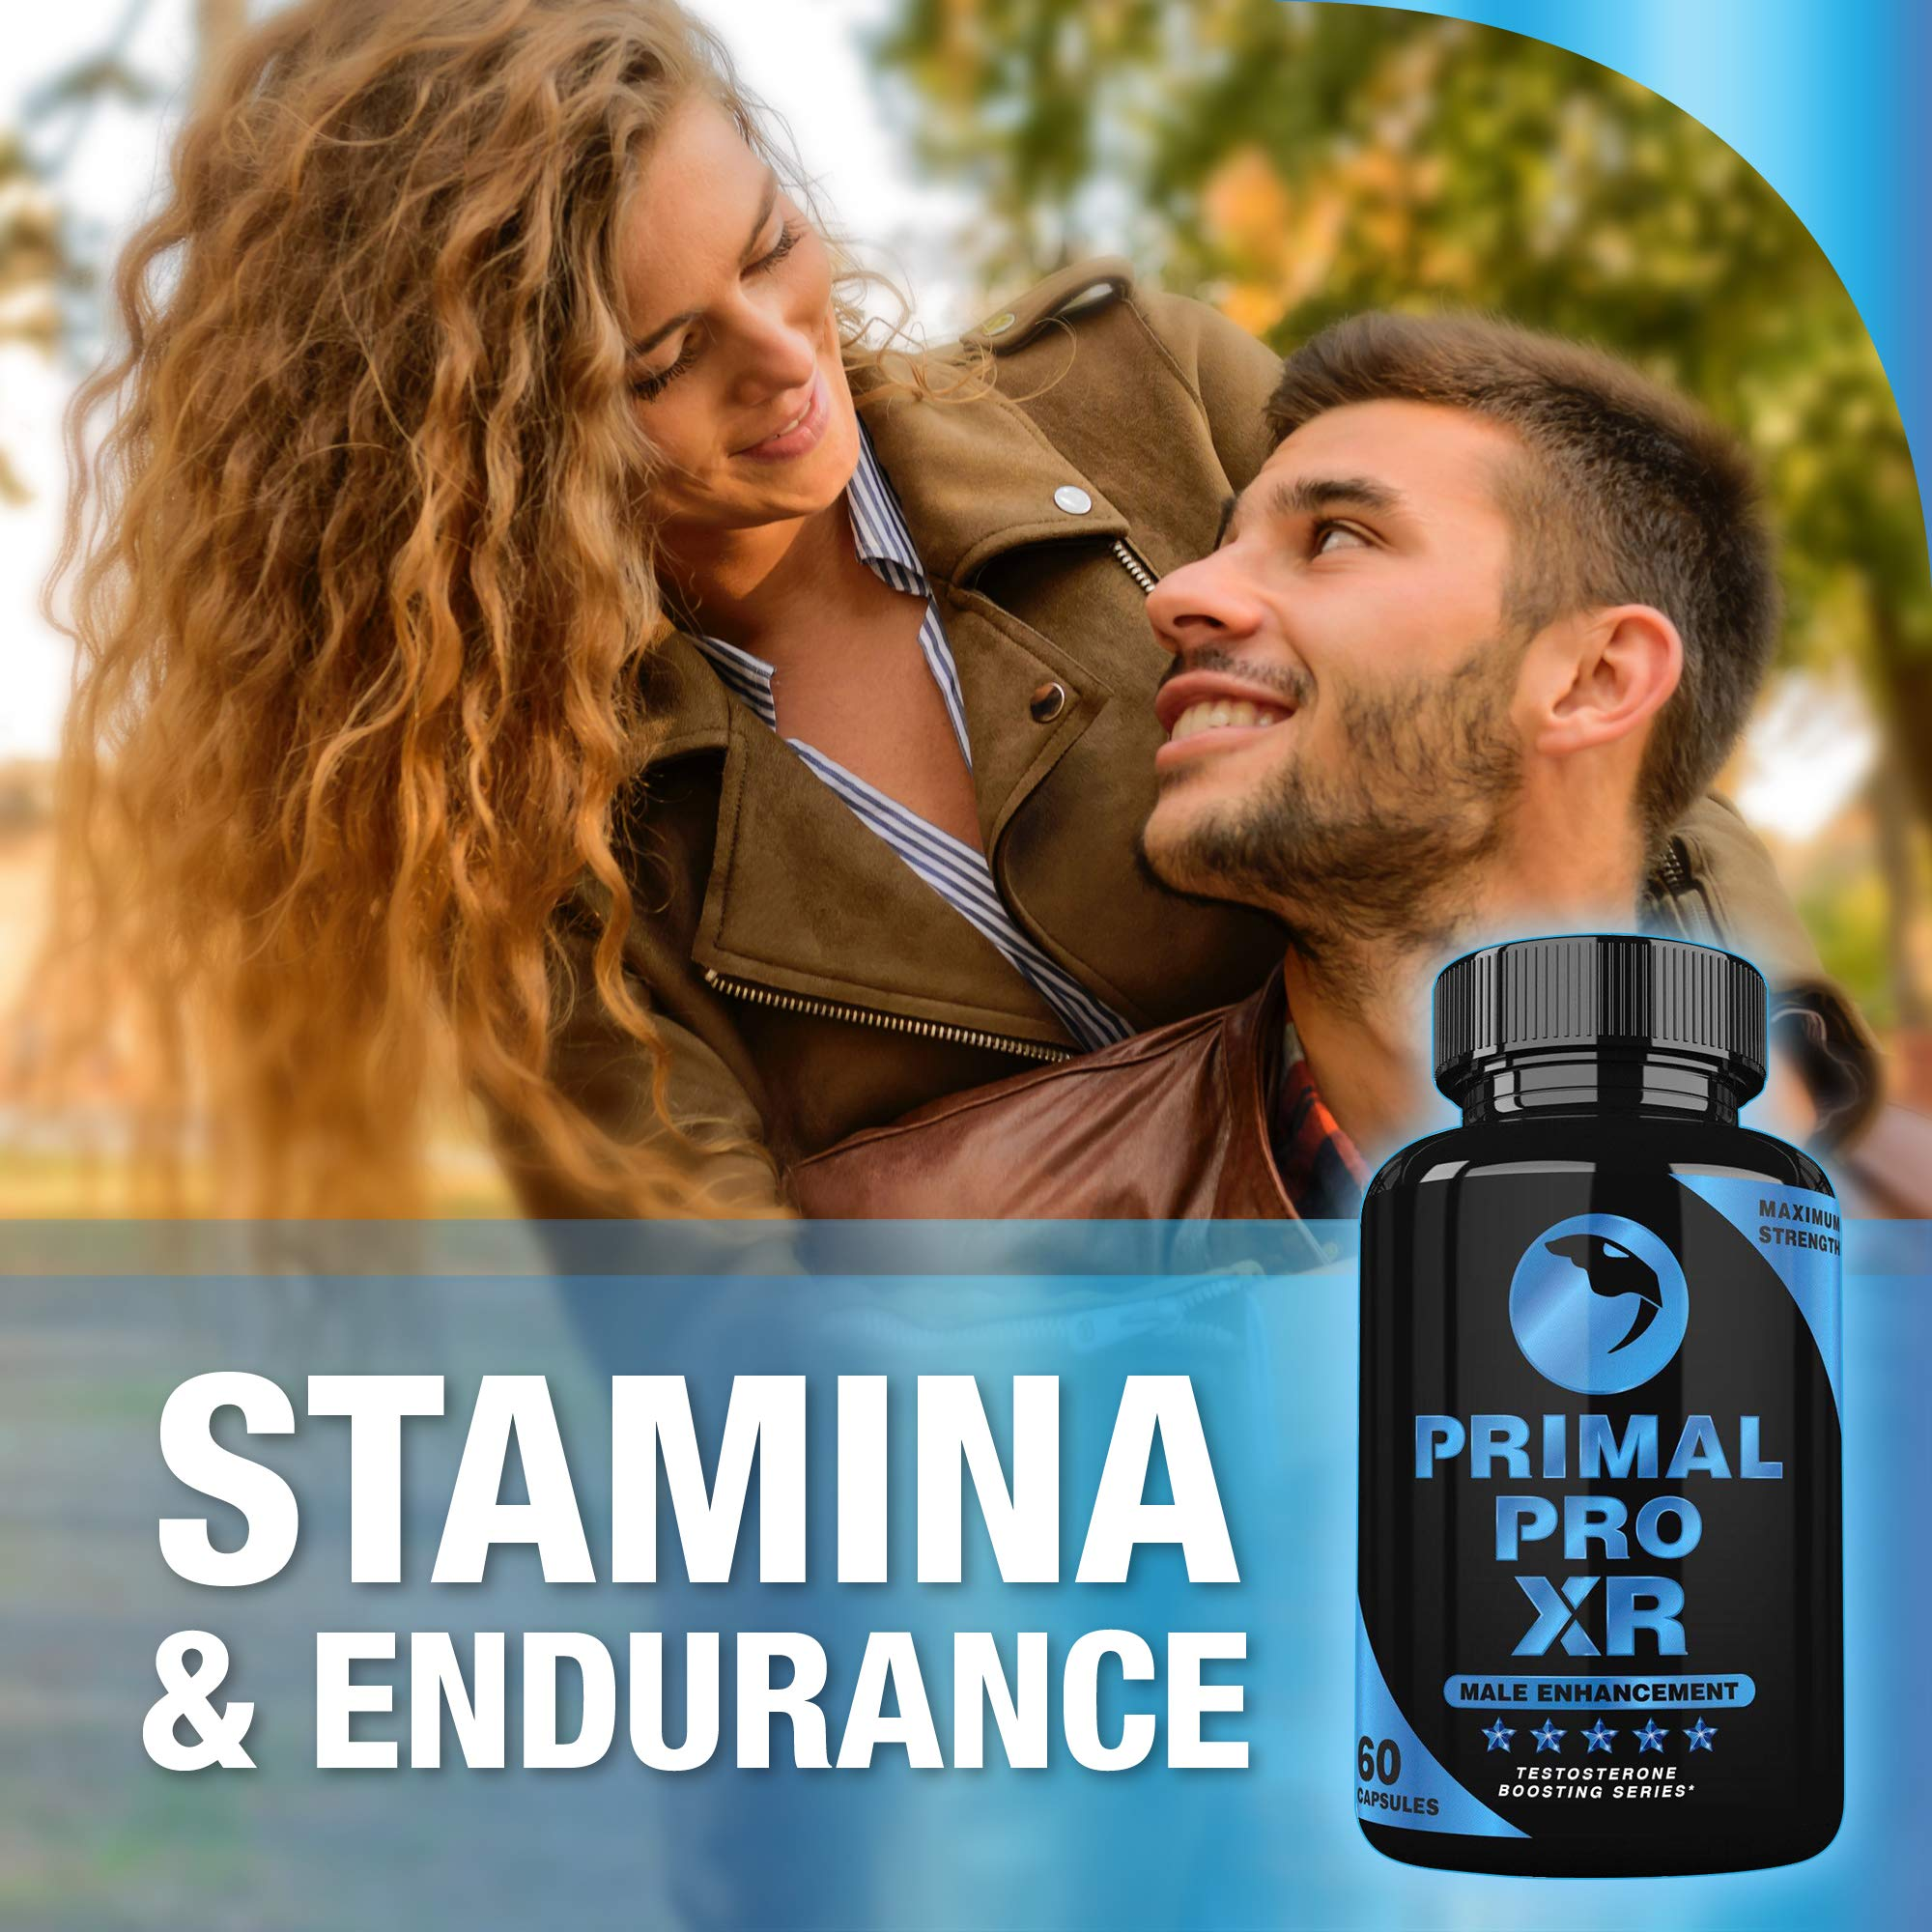 Primal Pro XR - Male Enhancement - Extra Strength Testosterone Booster - Naturally Boost Your Libido, Stamina, Endurance, Strength & Energy for Men & Women - Burn Fat & Build Lean Muscle Mass Today by Primal Pro XR (Image #5)